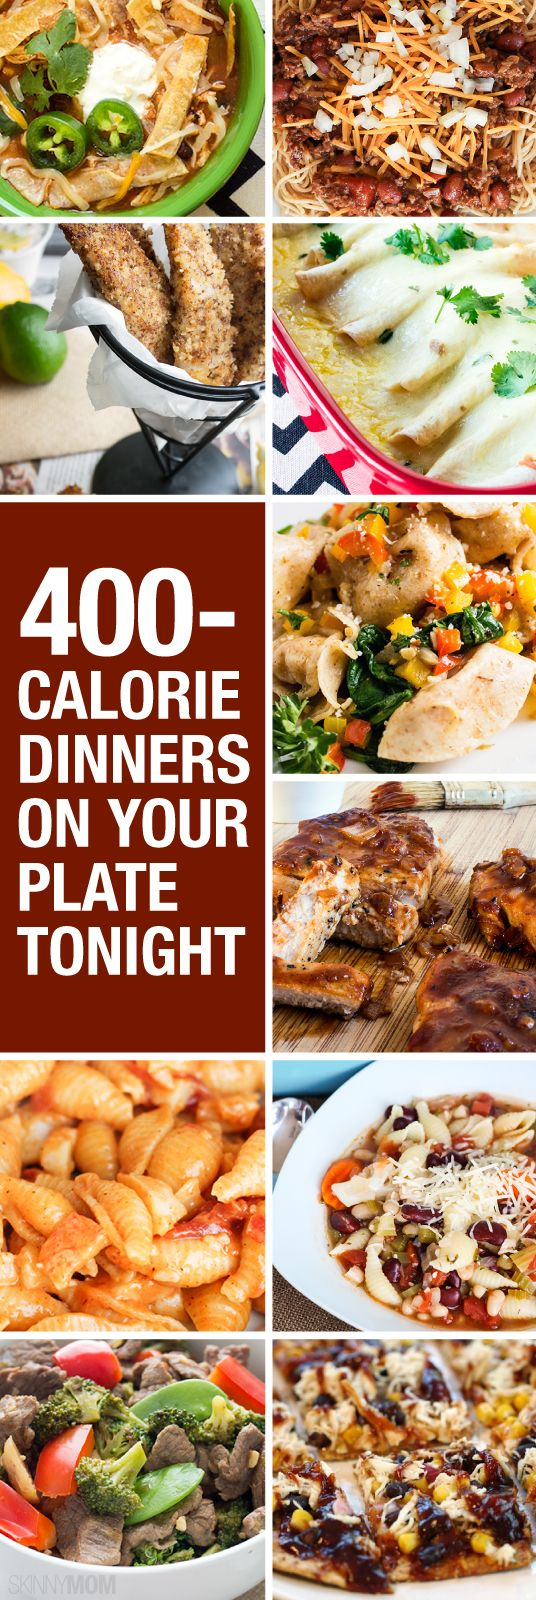 Your entire family will love these recipes that have under 400 calories.